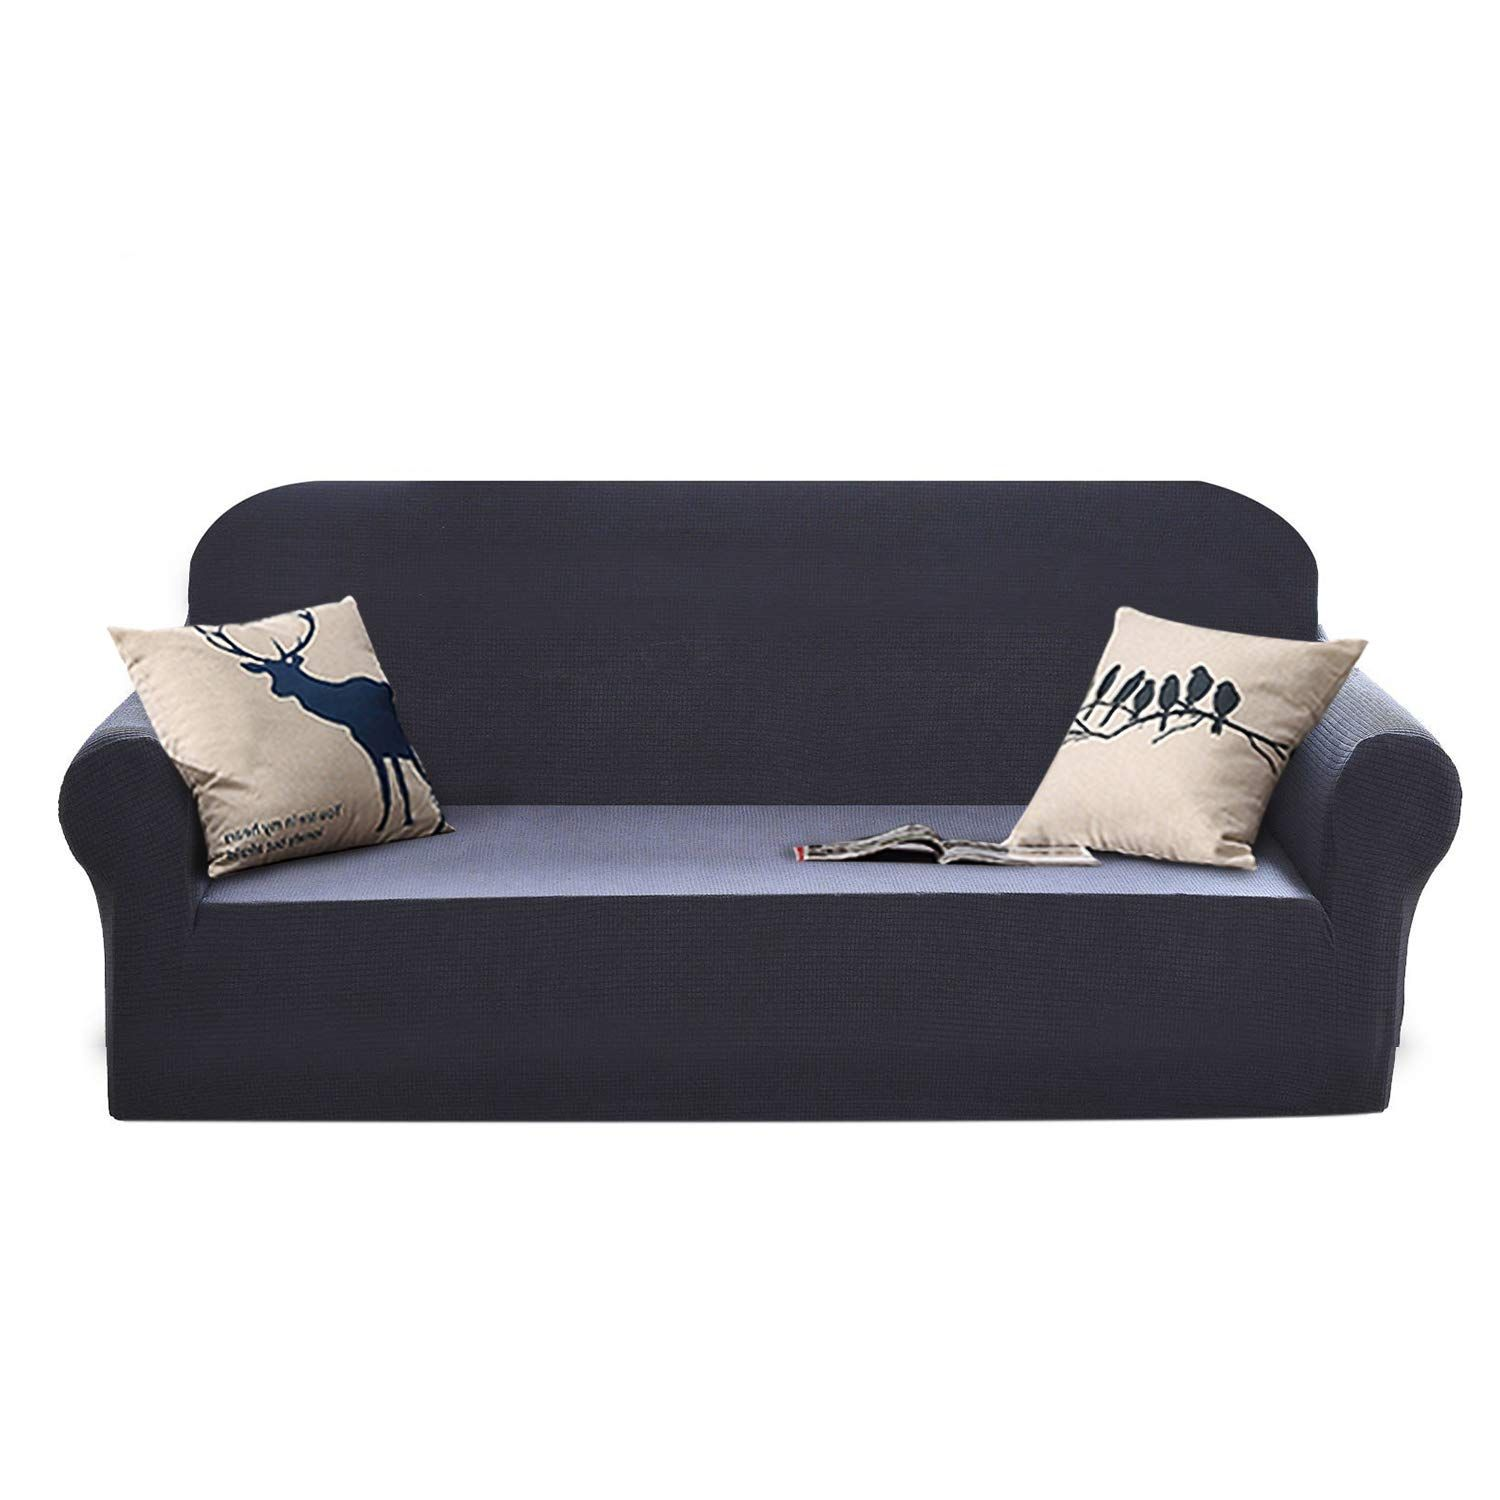 Yemyhom High Stretch Couch Covers Jacquard Dog Sofa Covers 3